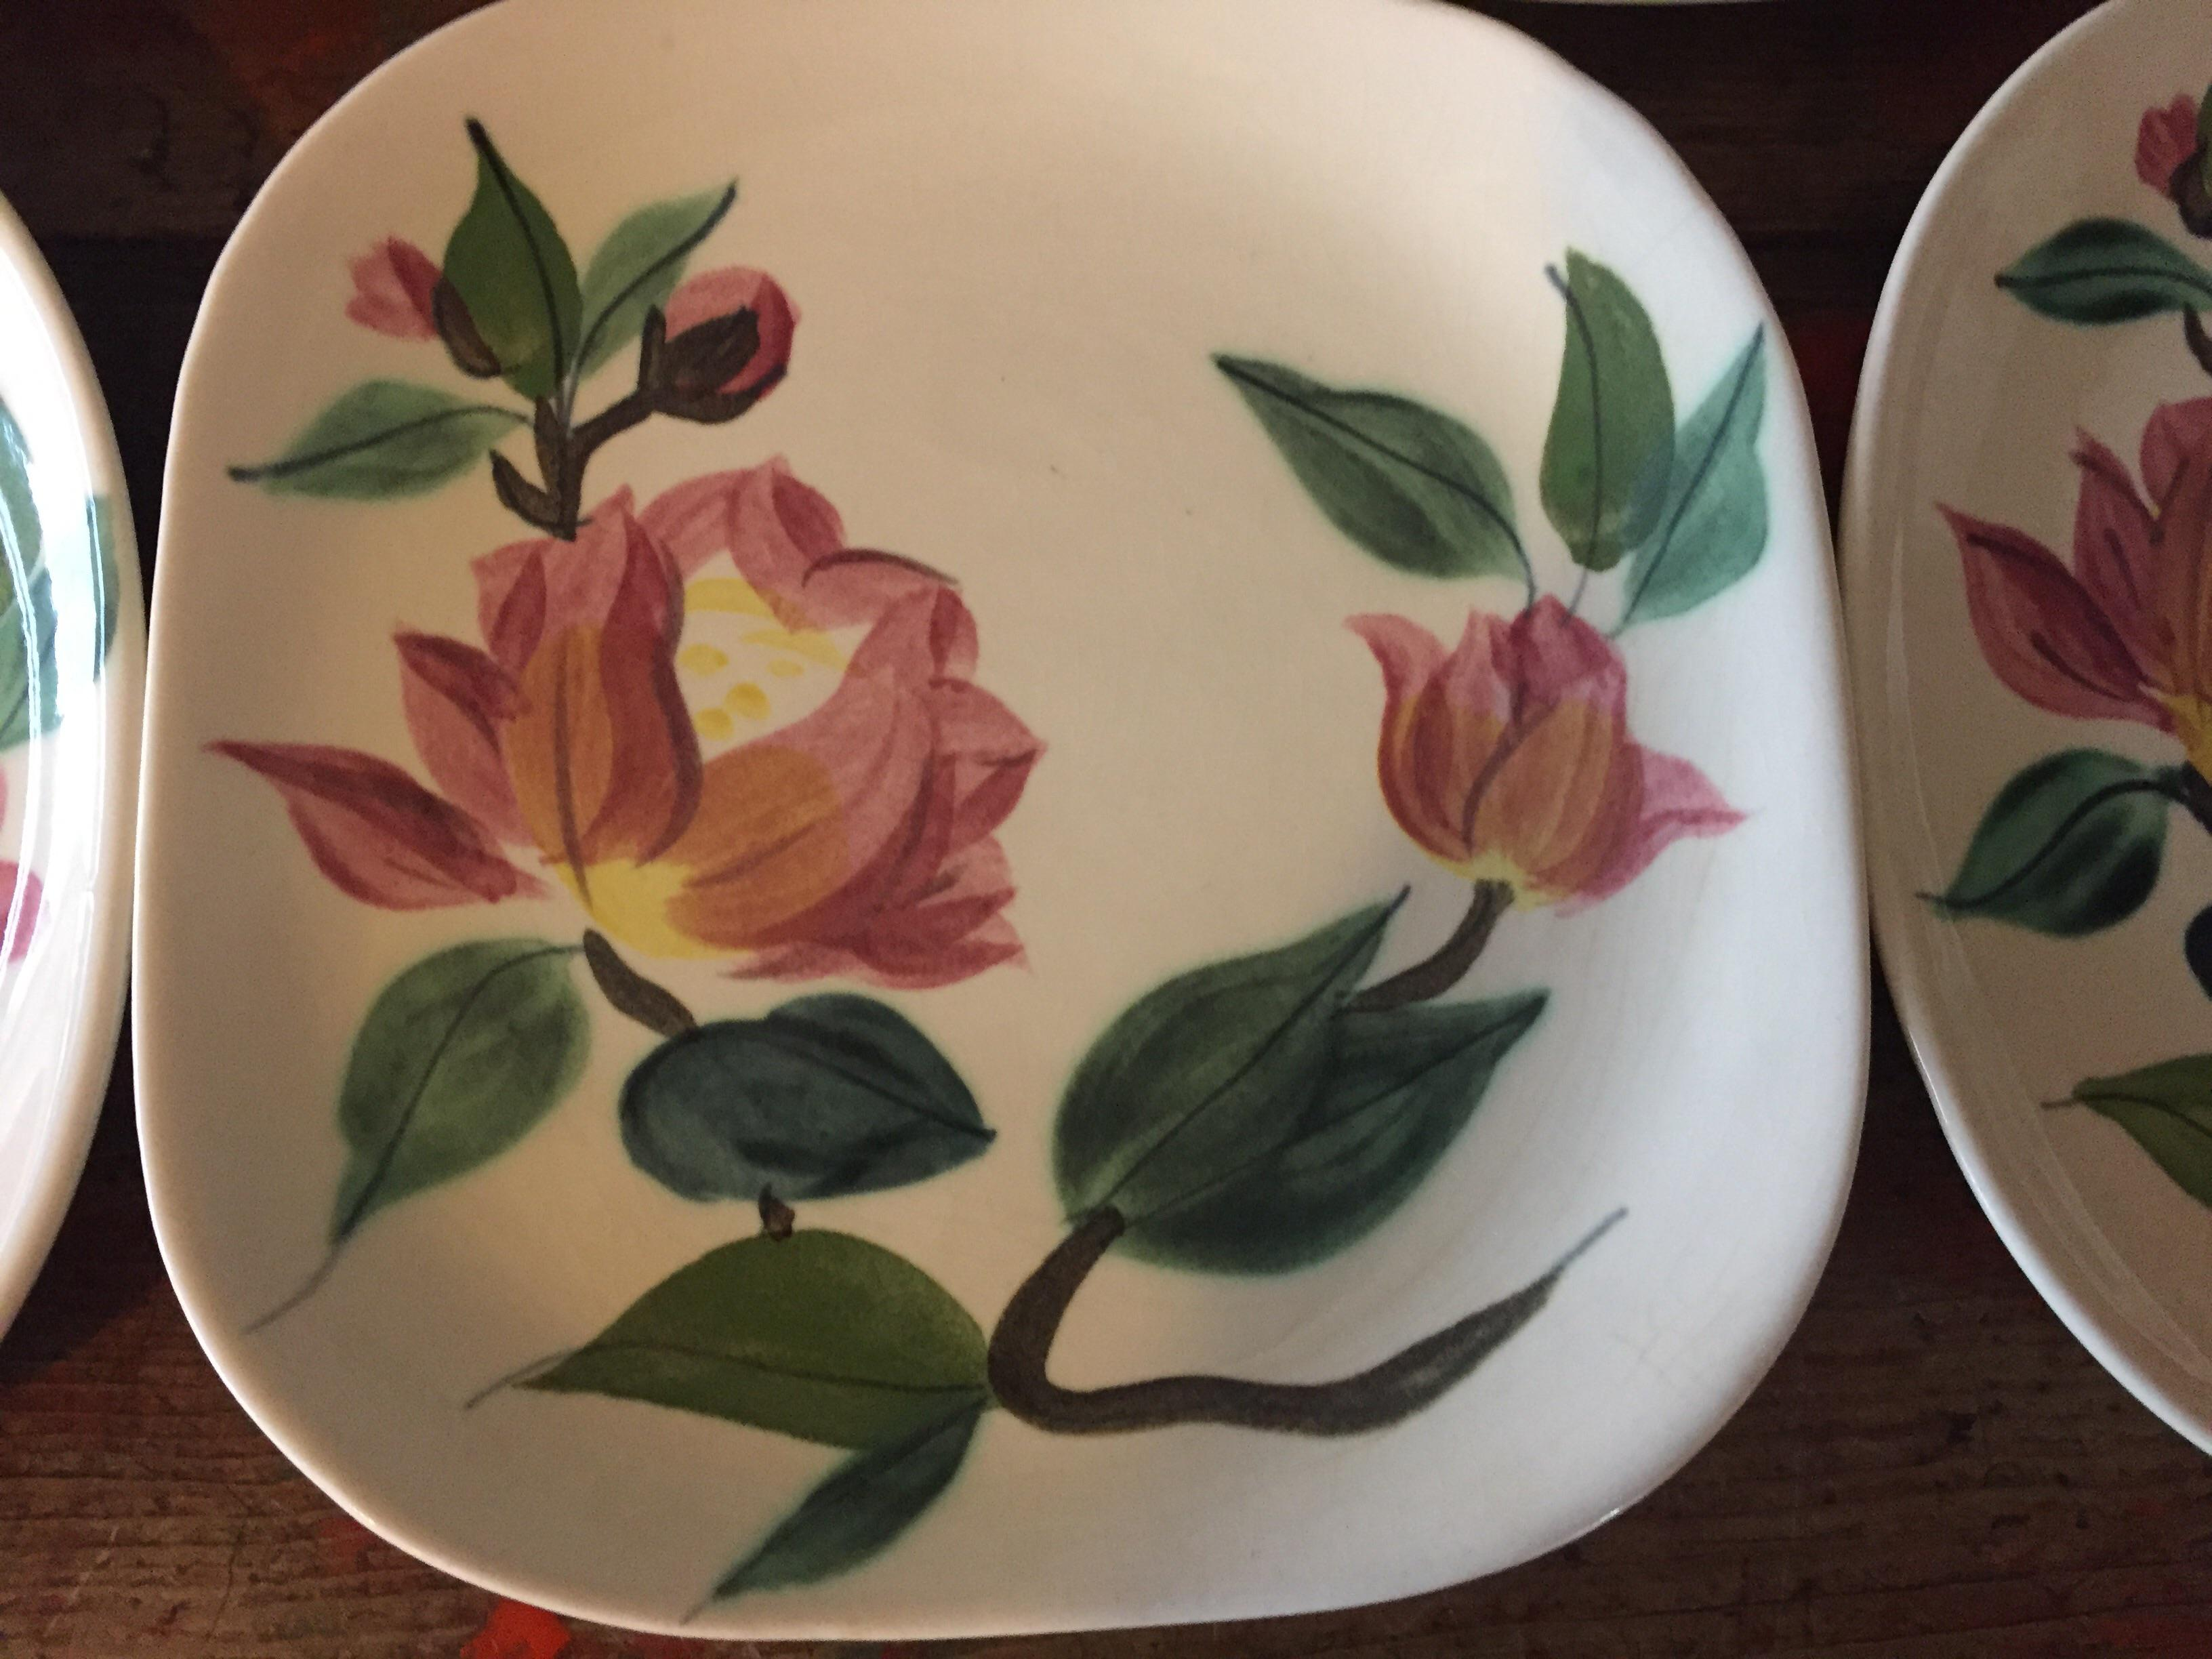 Vintage Red Wing Pottery Plates - Set of 5 - Image 5 of 10  sc 1 st  Chairish & Vintage Red Wing Pottery Plates - Set of 5 | Chairish